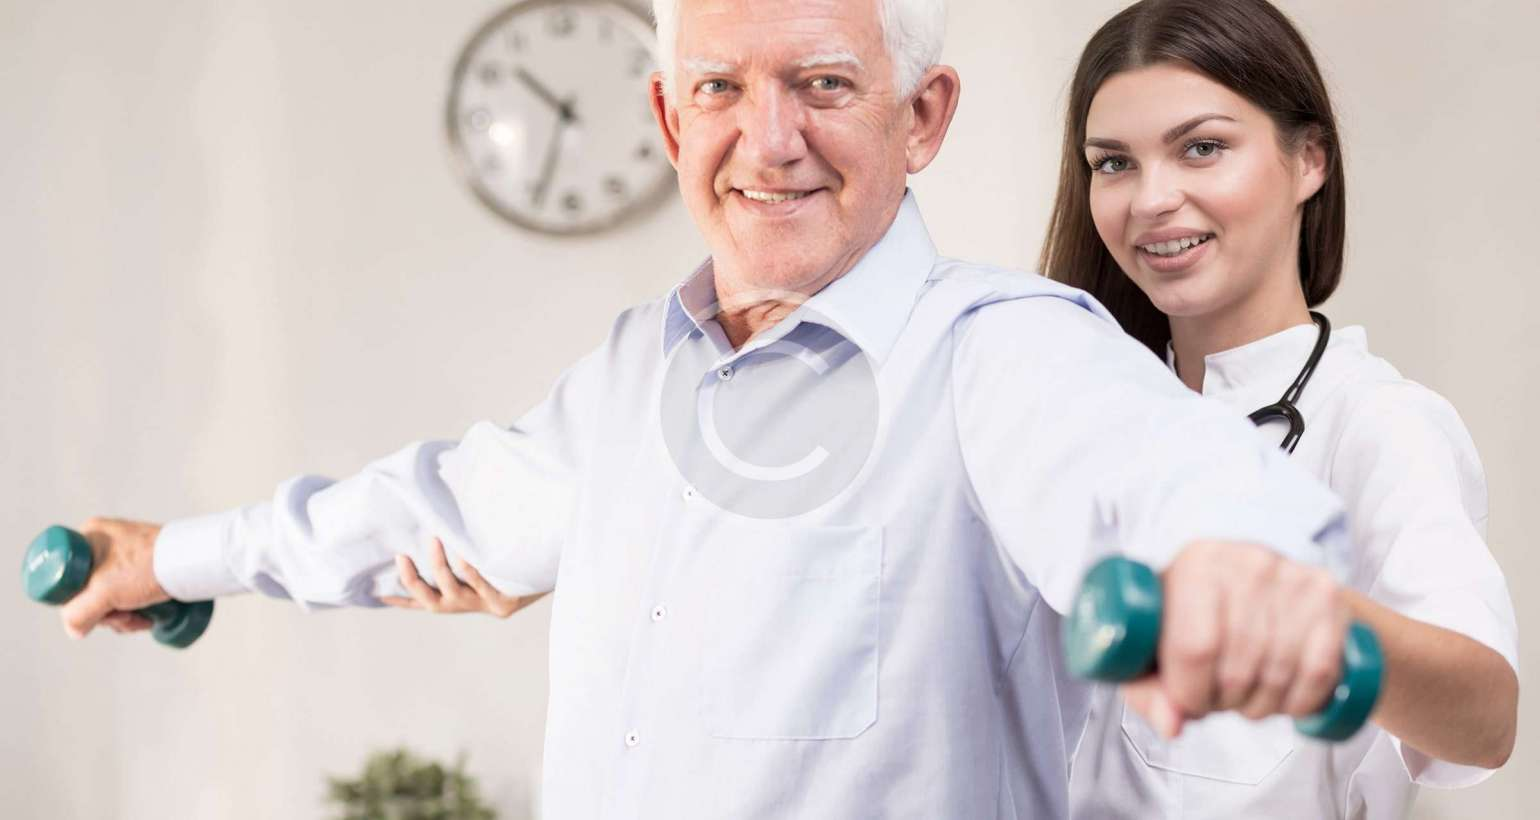 Tips for Keeping the Senior in Your Life Active